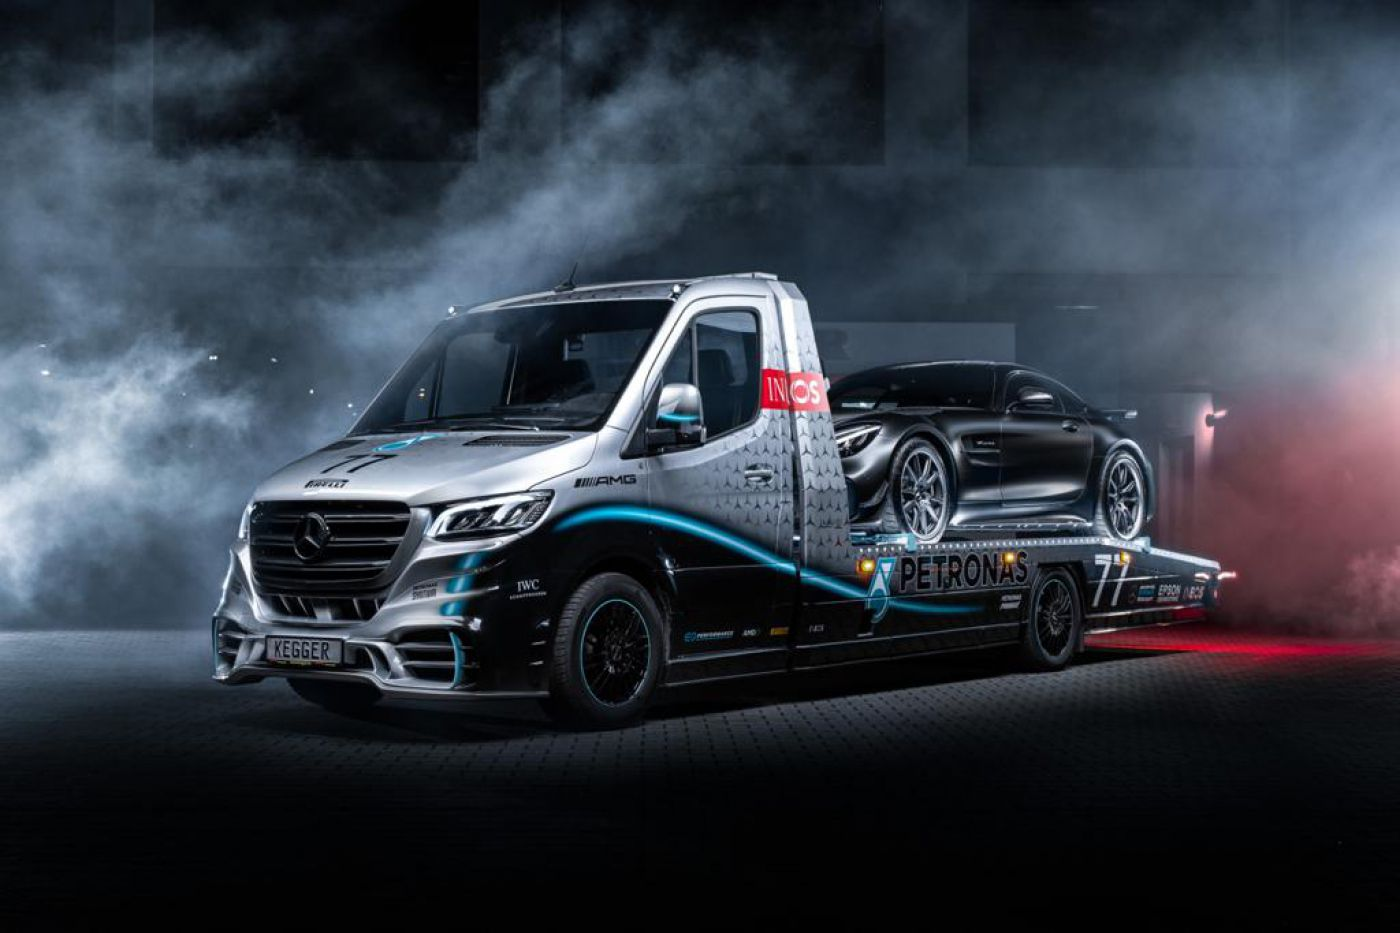 Mercedes-Benz Sprinter 319 AMG PETRONAS LIM. EDITION 1OF25